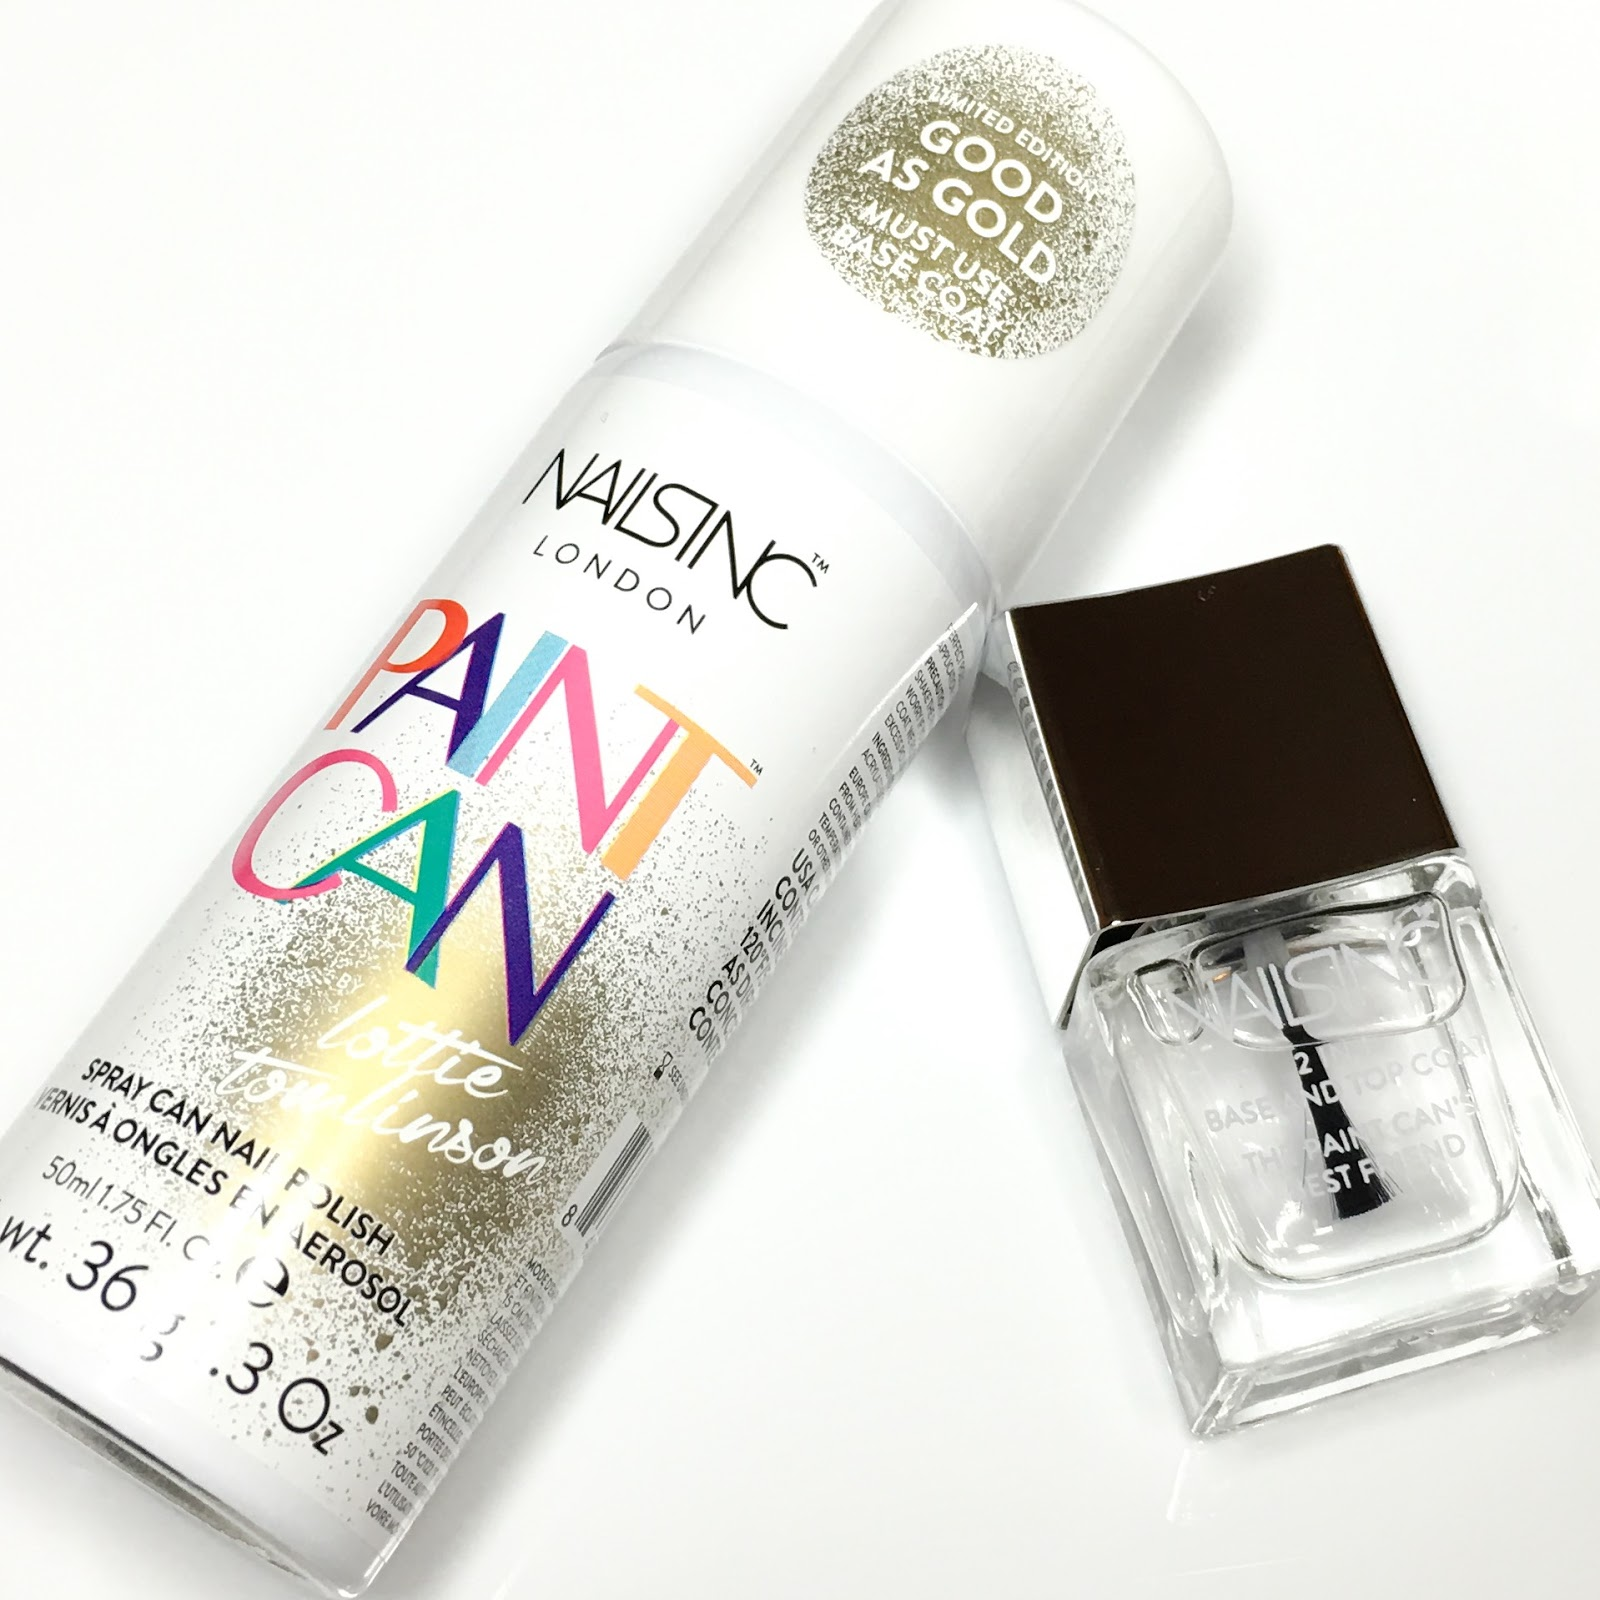 Does it work nails inc paint can spray on nail - Does It Work Nails Inc Paint Can Spray On Nail 75